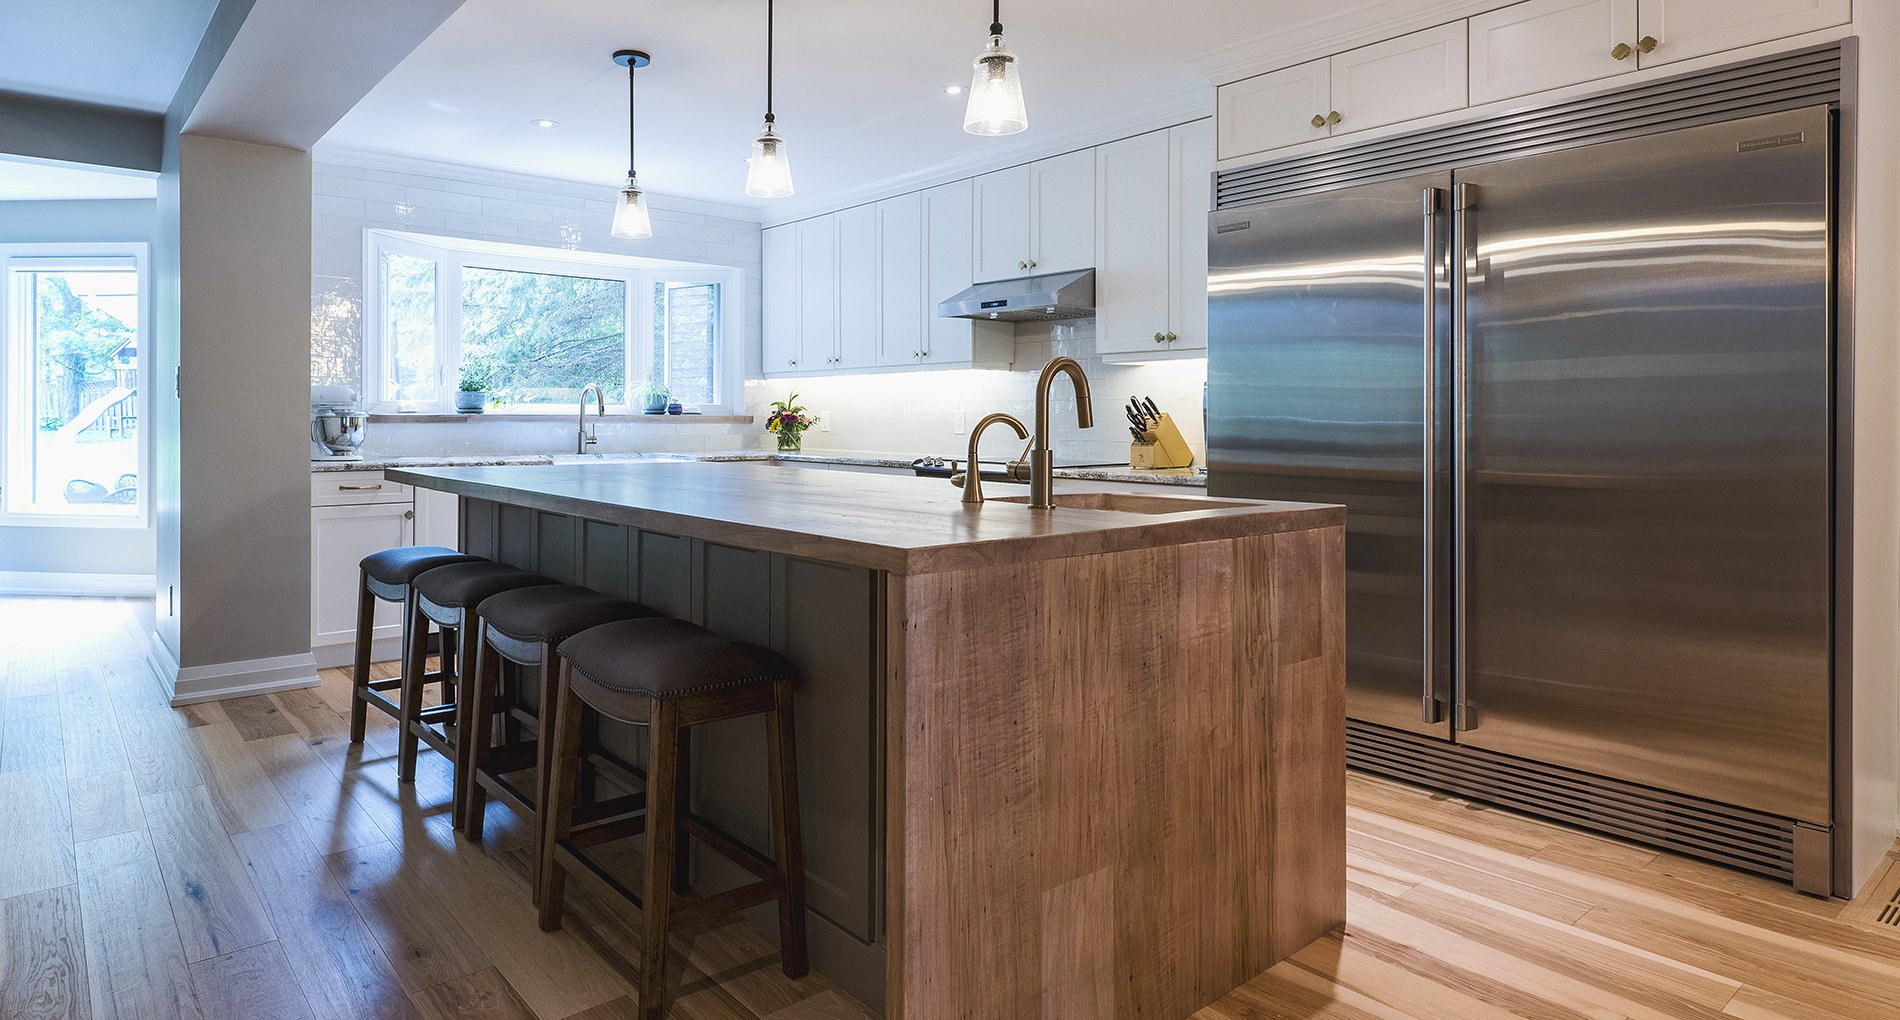 custom kitchen with large stainless steel fridge and large island with wood finishing